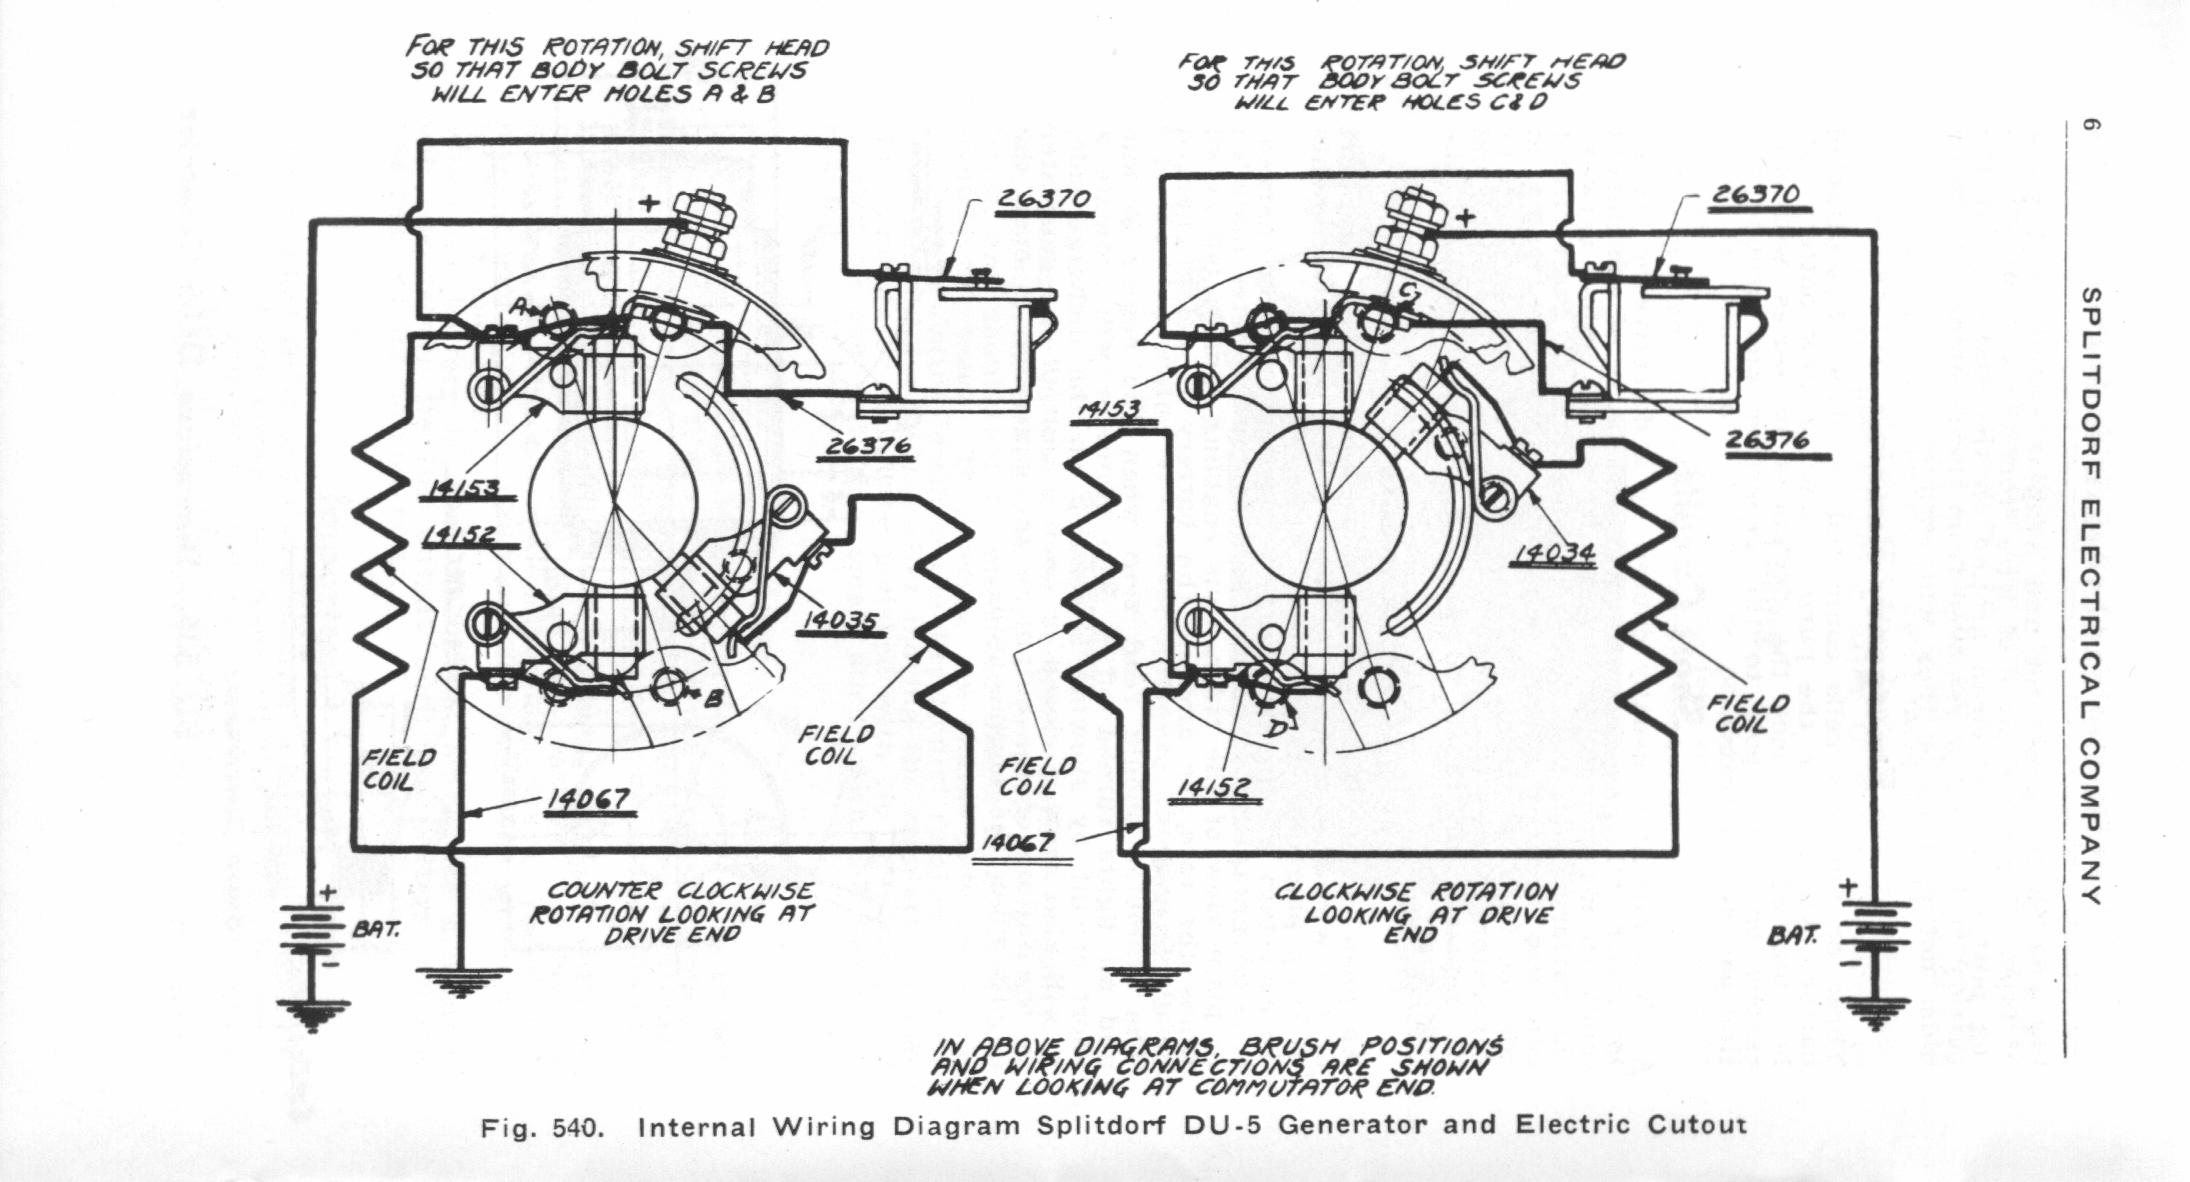 Indian Chief Wiring Diagram Will Be A Thing 1948 Motorcycle Engine Du 7 Repair Rh Splitdorfreg Com Indak 5 Pole Ignition Switch